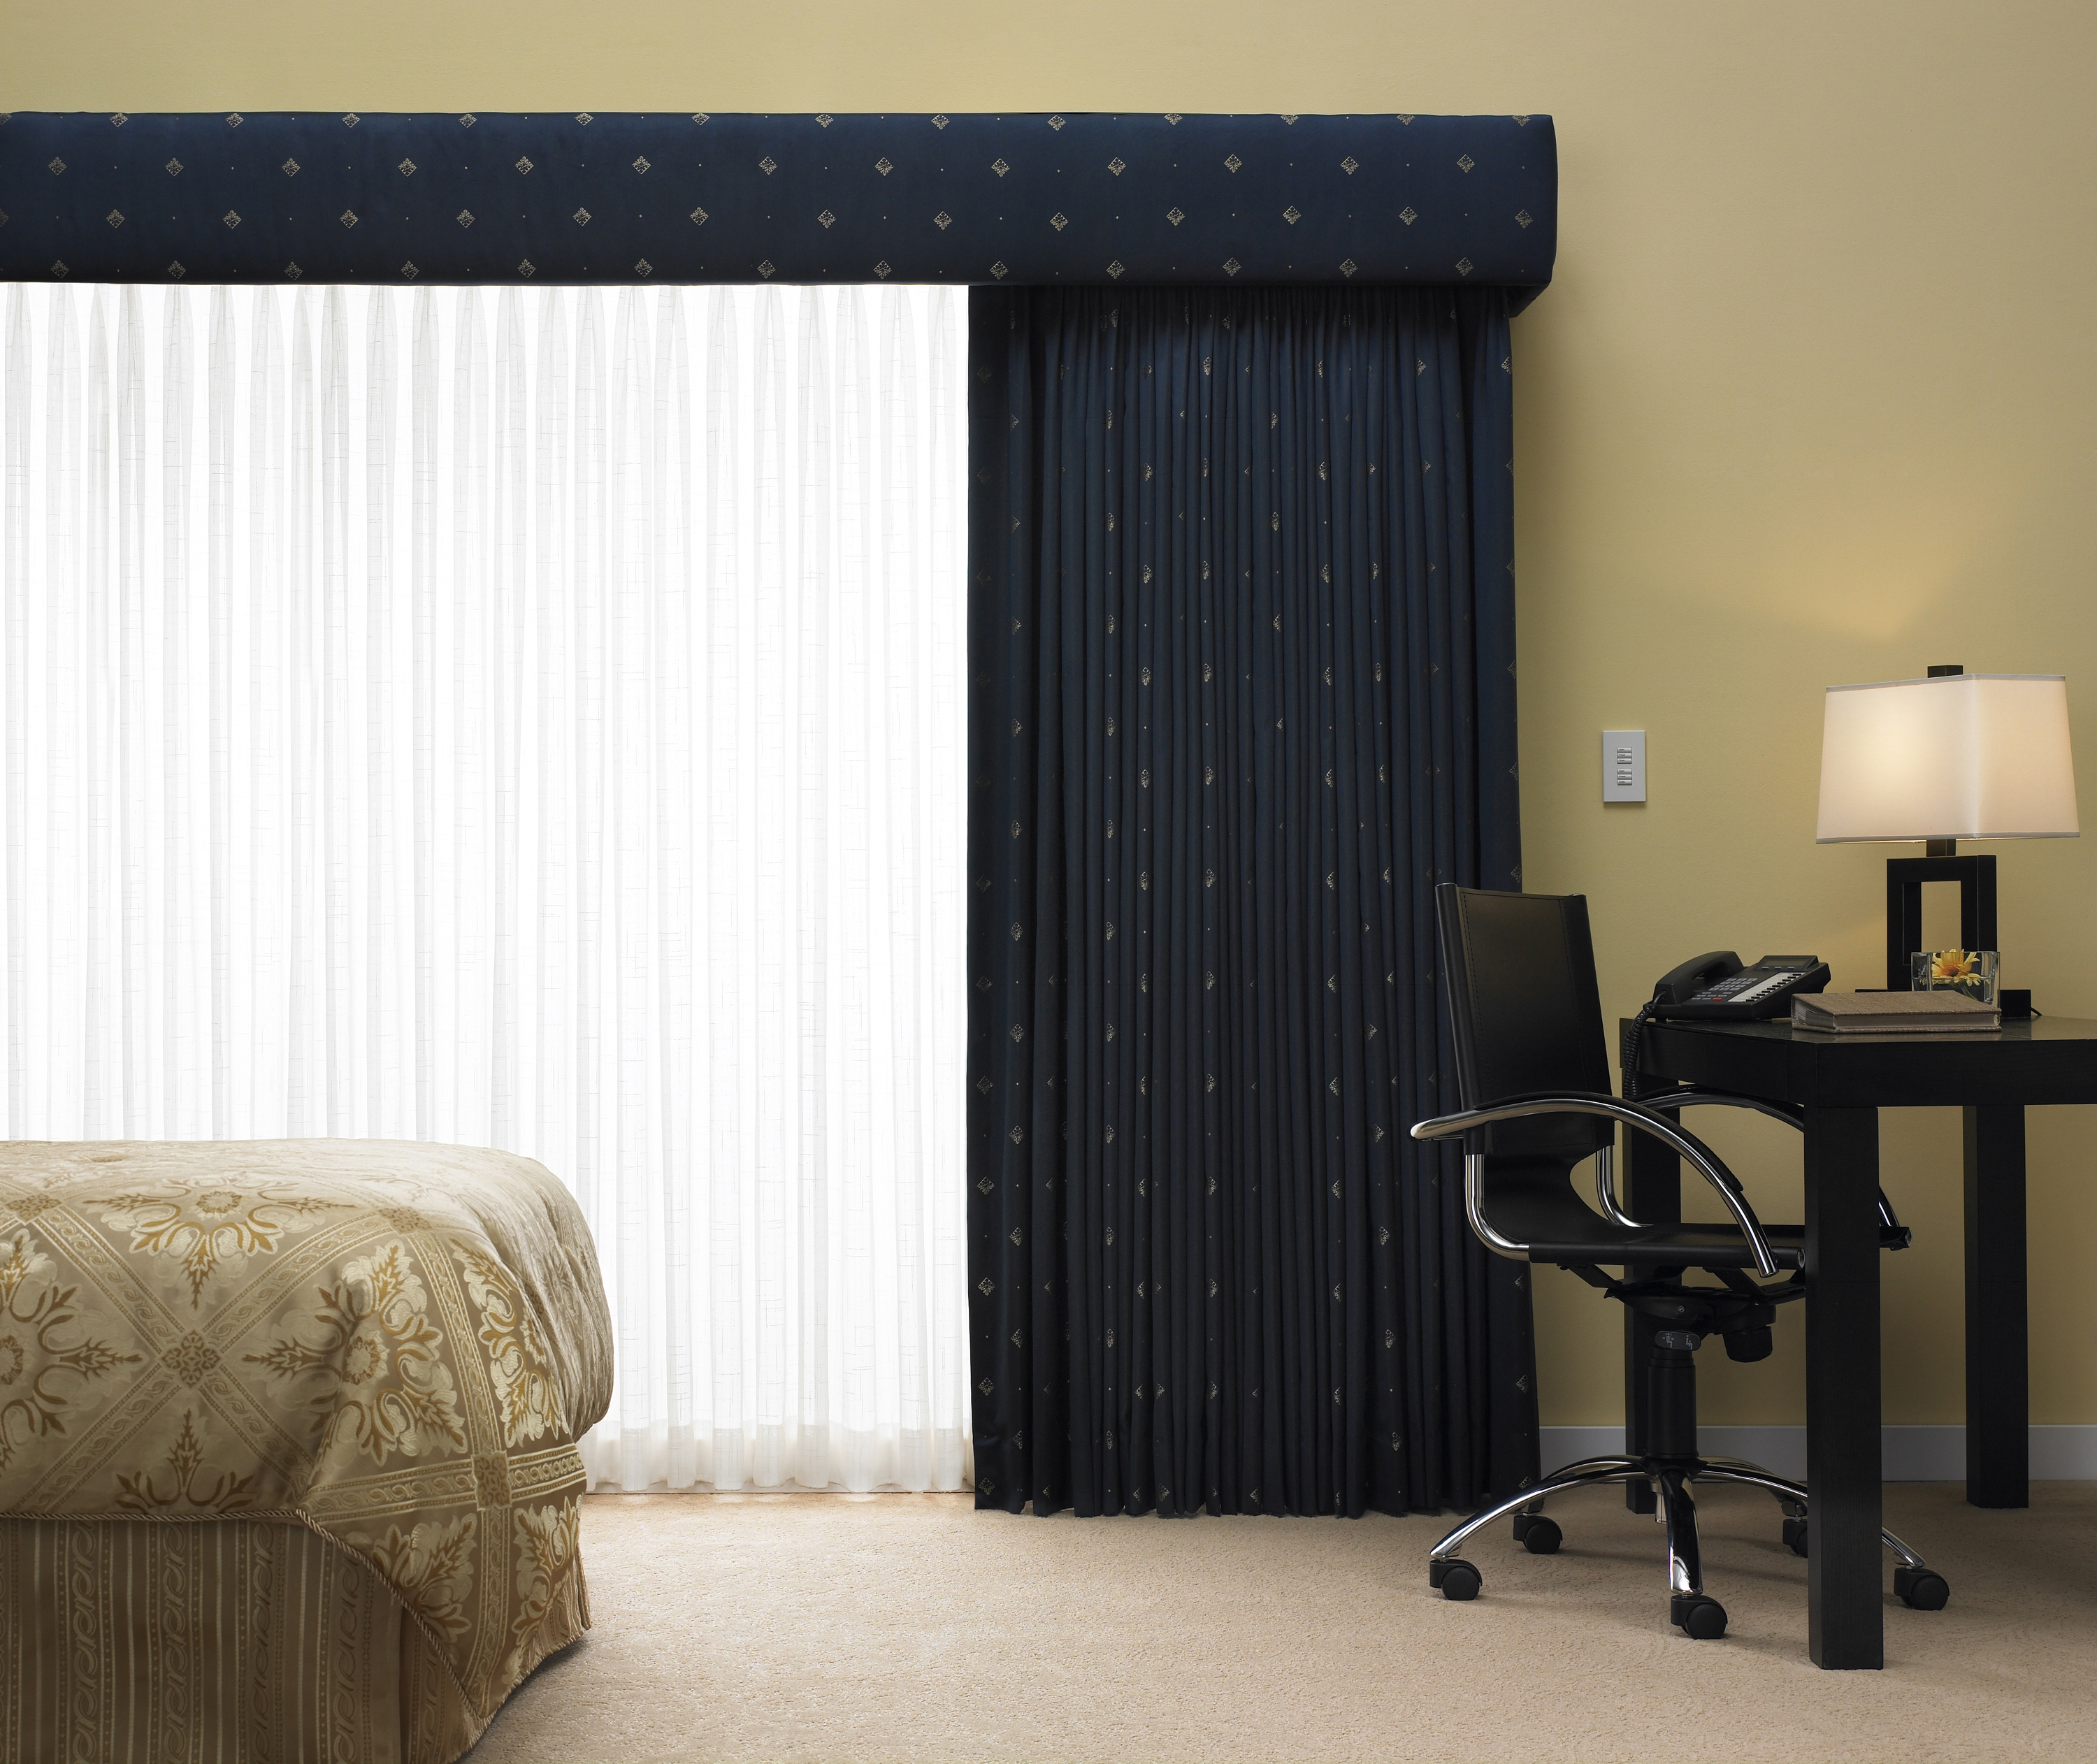 Blackout Curtains Shades 3 Blind Mice Window Coverings Intended For Blackout Curtains And Blinds (Image 4 of 15)